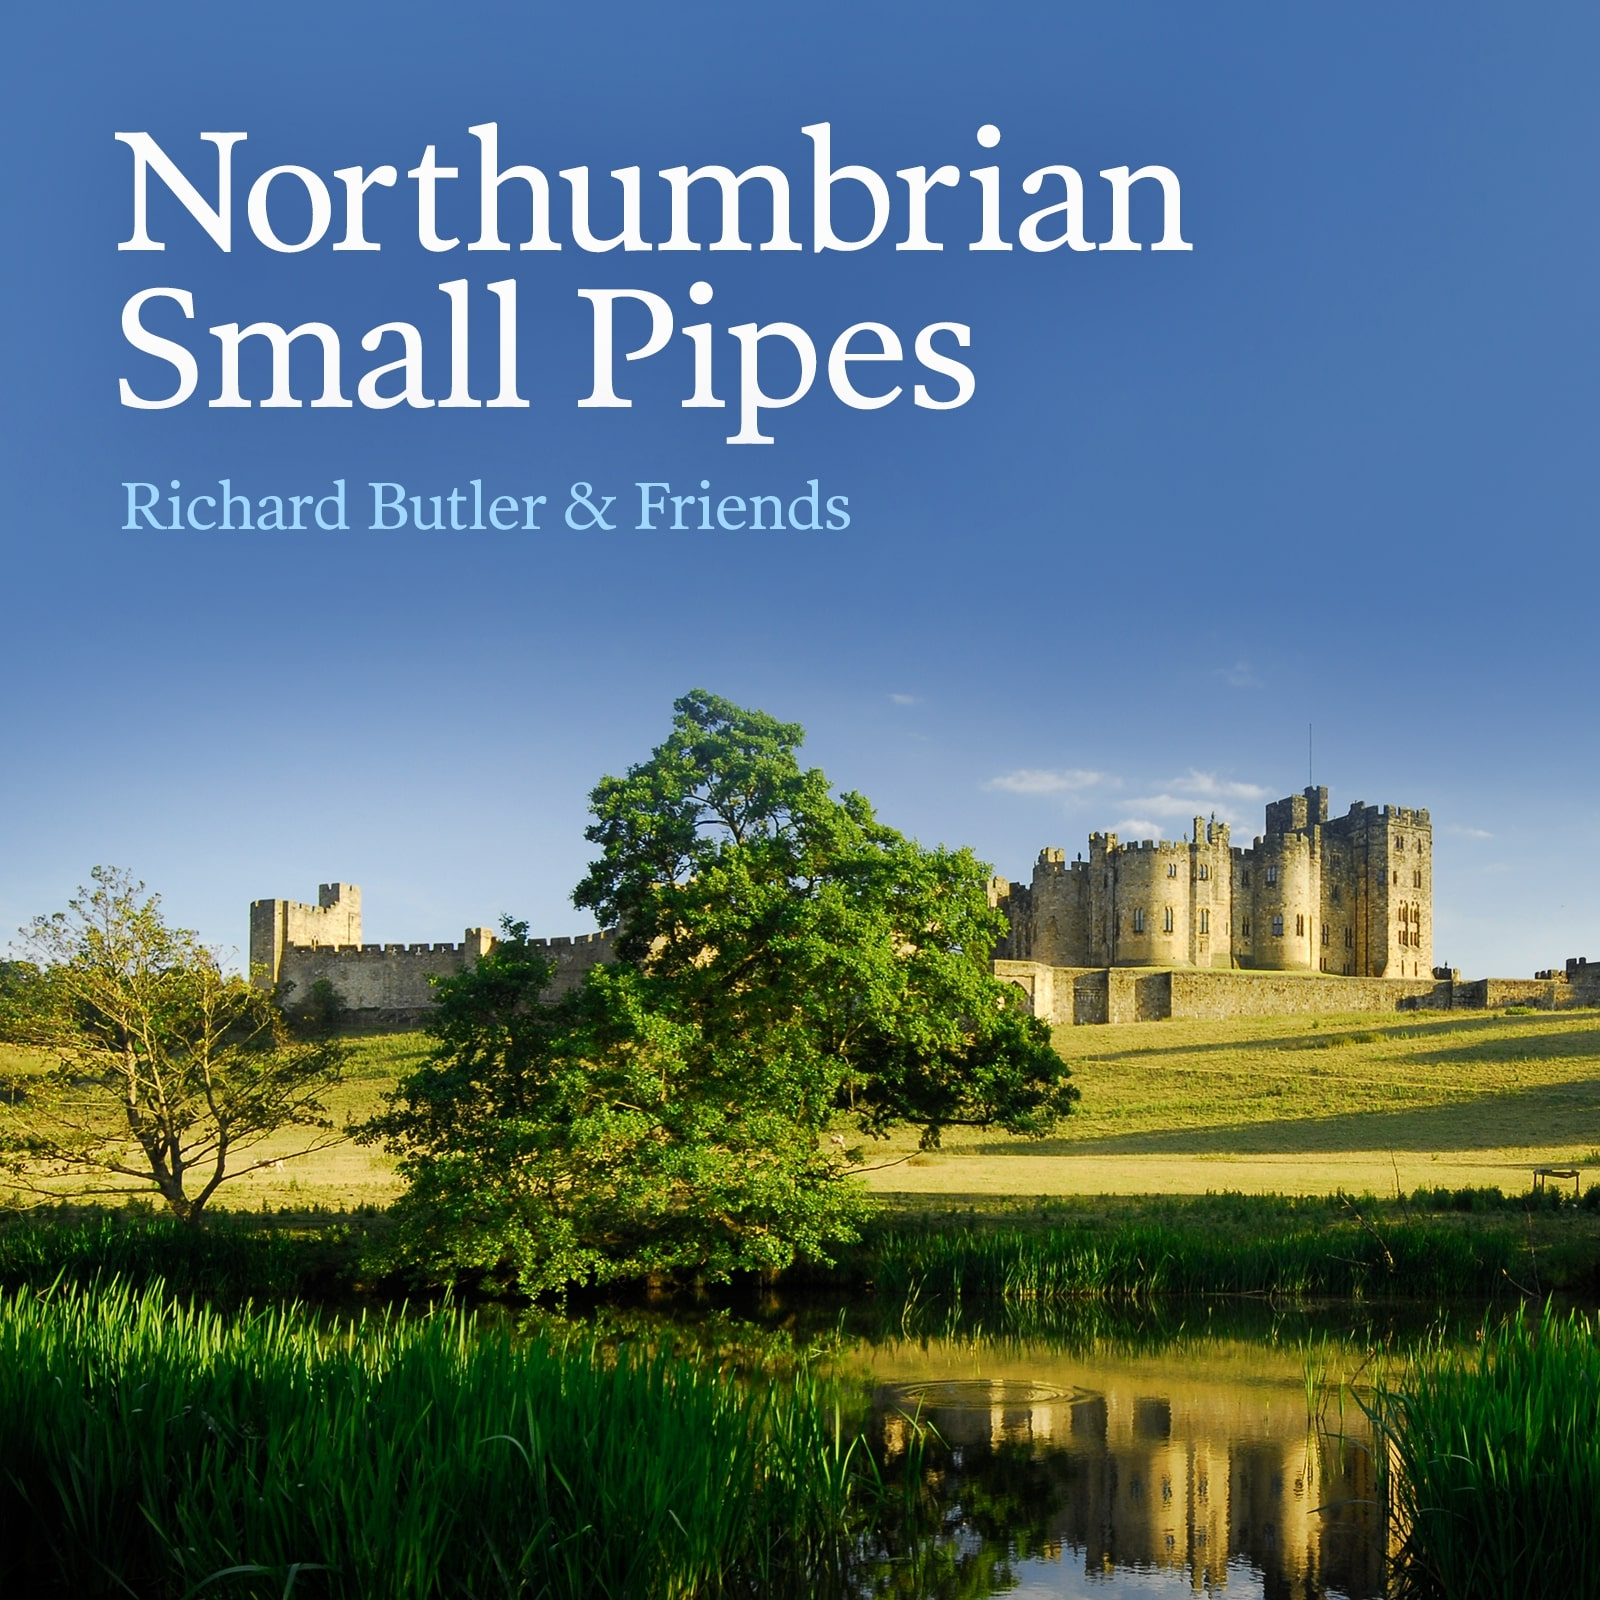 Northumbrian Small Pipes copy.jpg